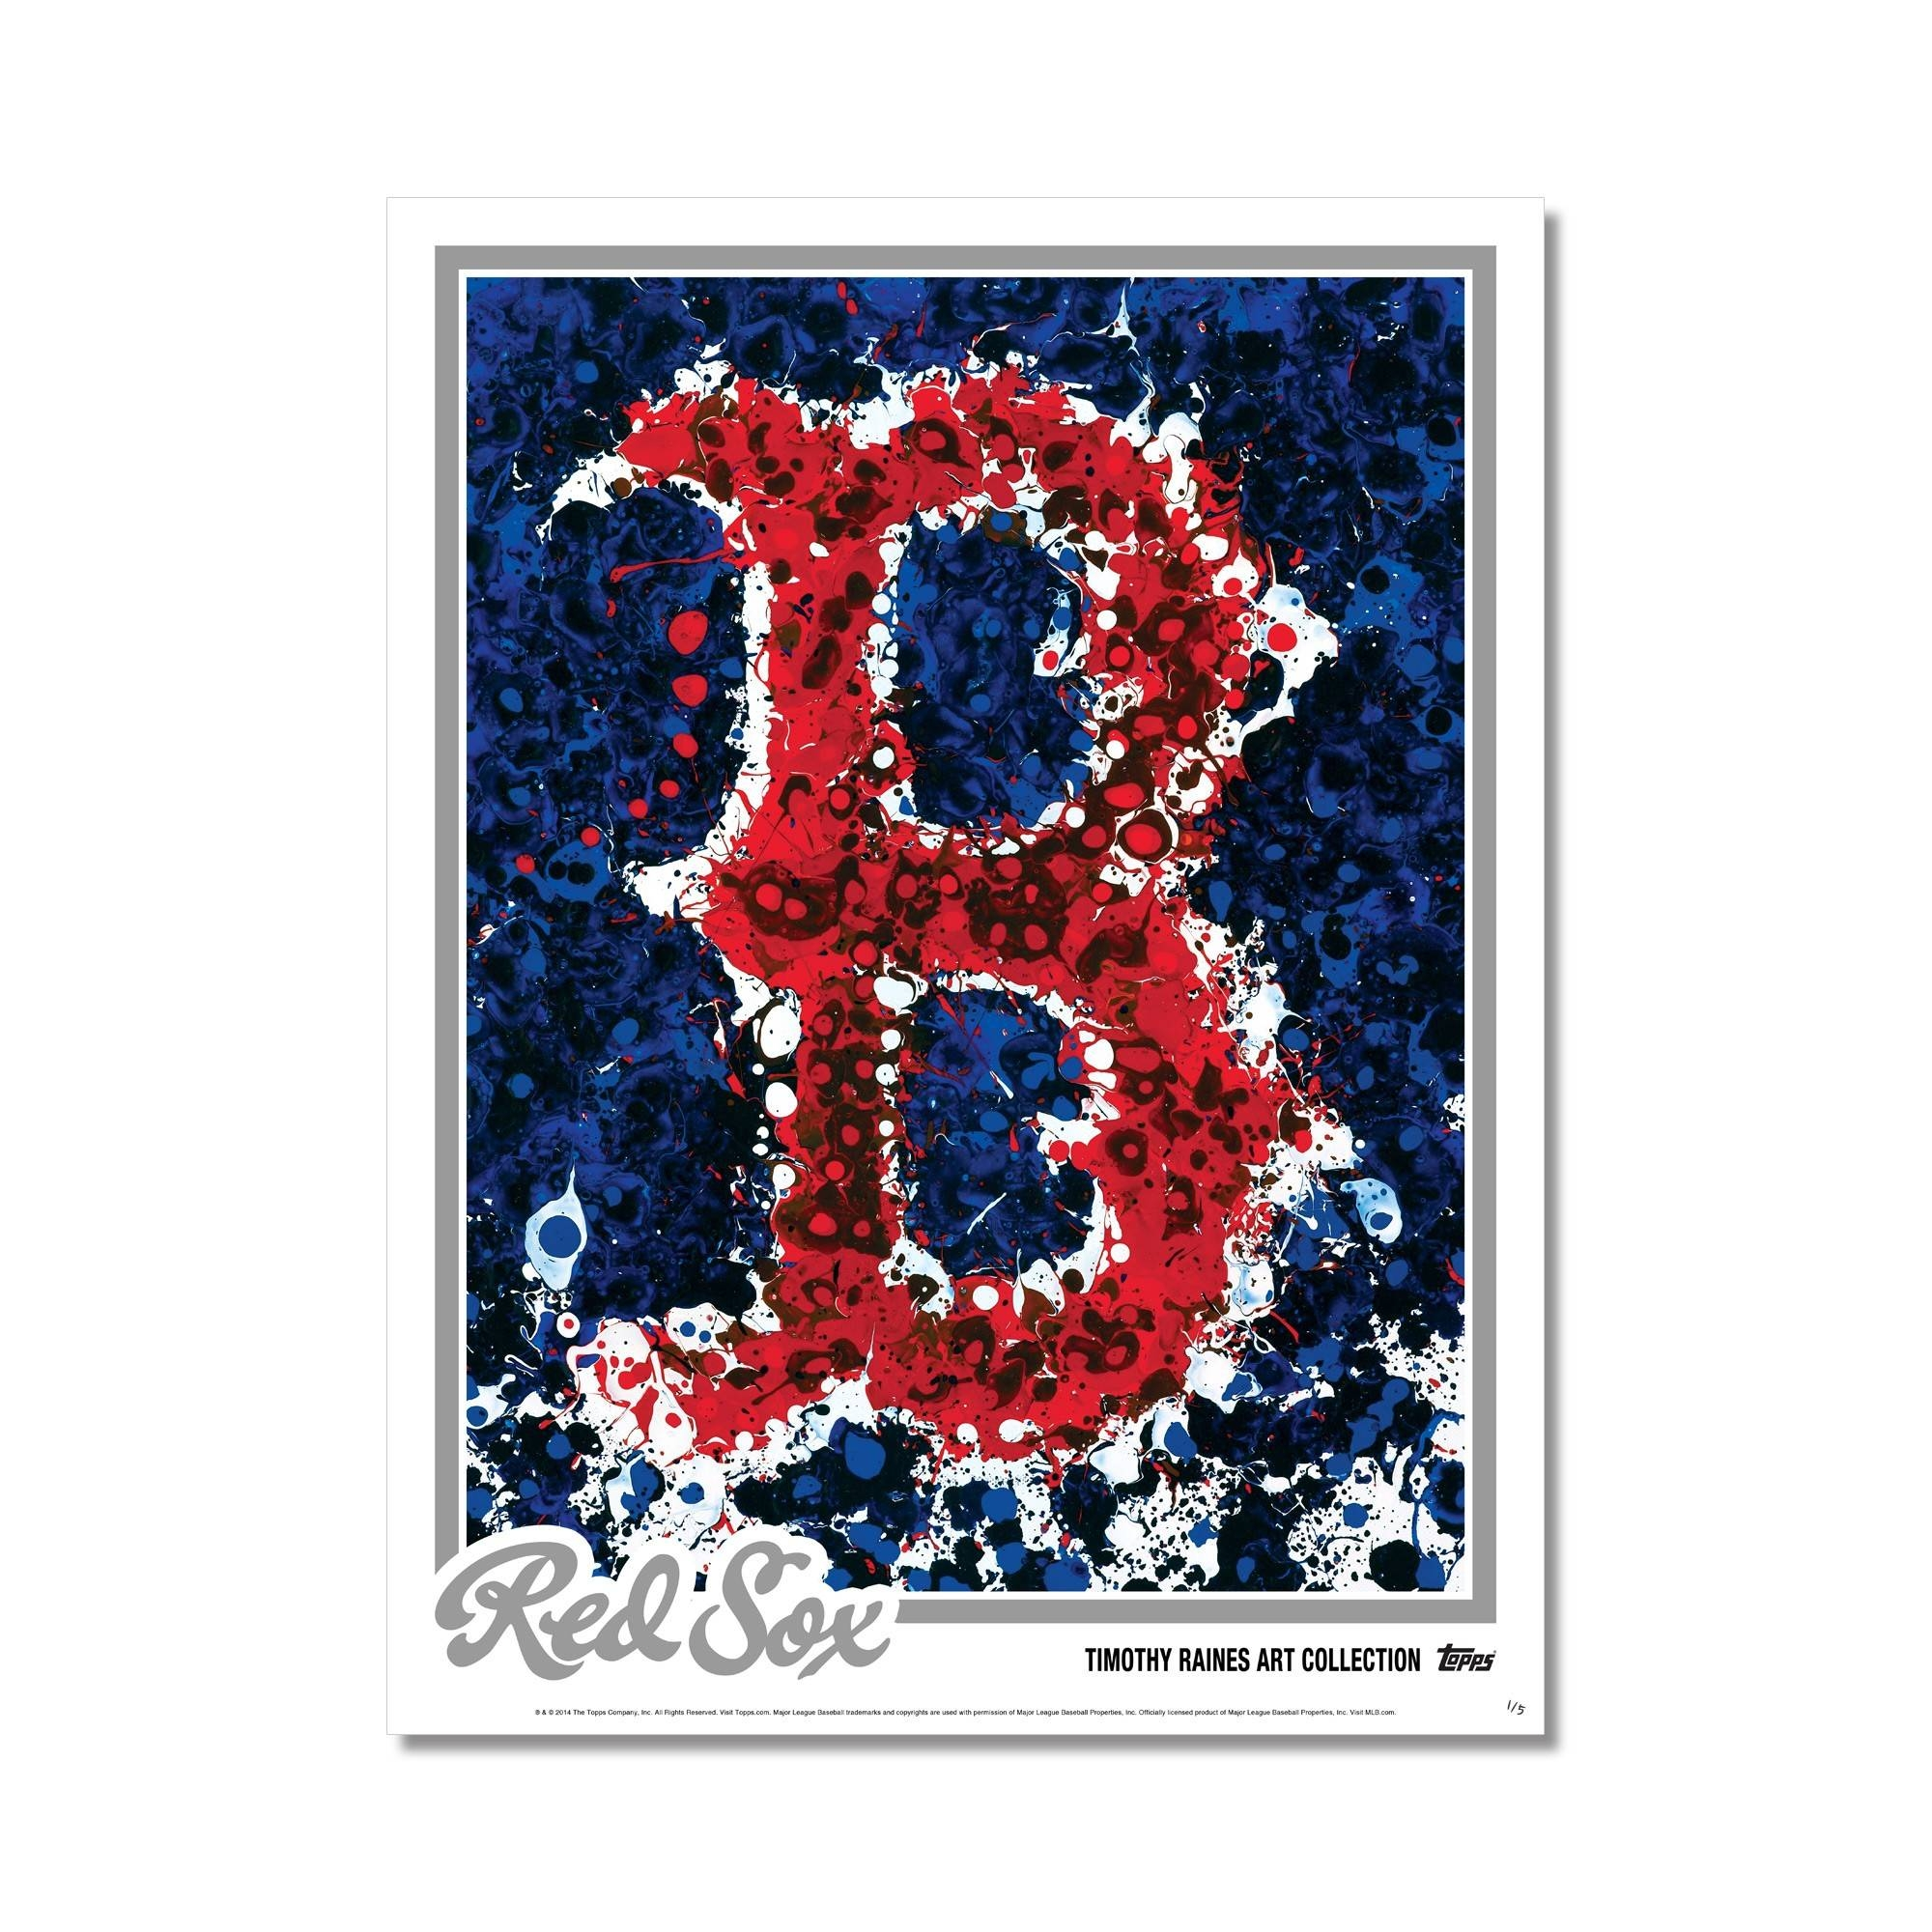 Boston Red Sox Logo Art Poster – Silver Edition # To 5 | Topps Pertaining To 2017 Boston Red Sox Wall Art (View 4 of 25)